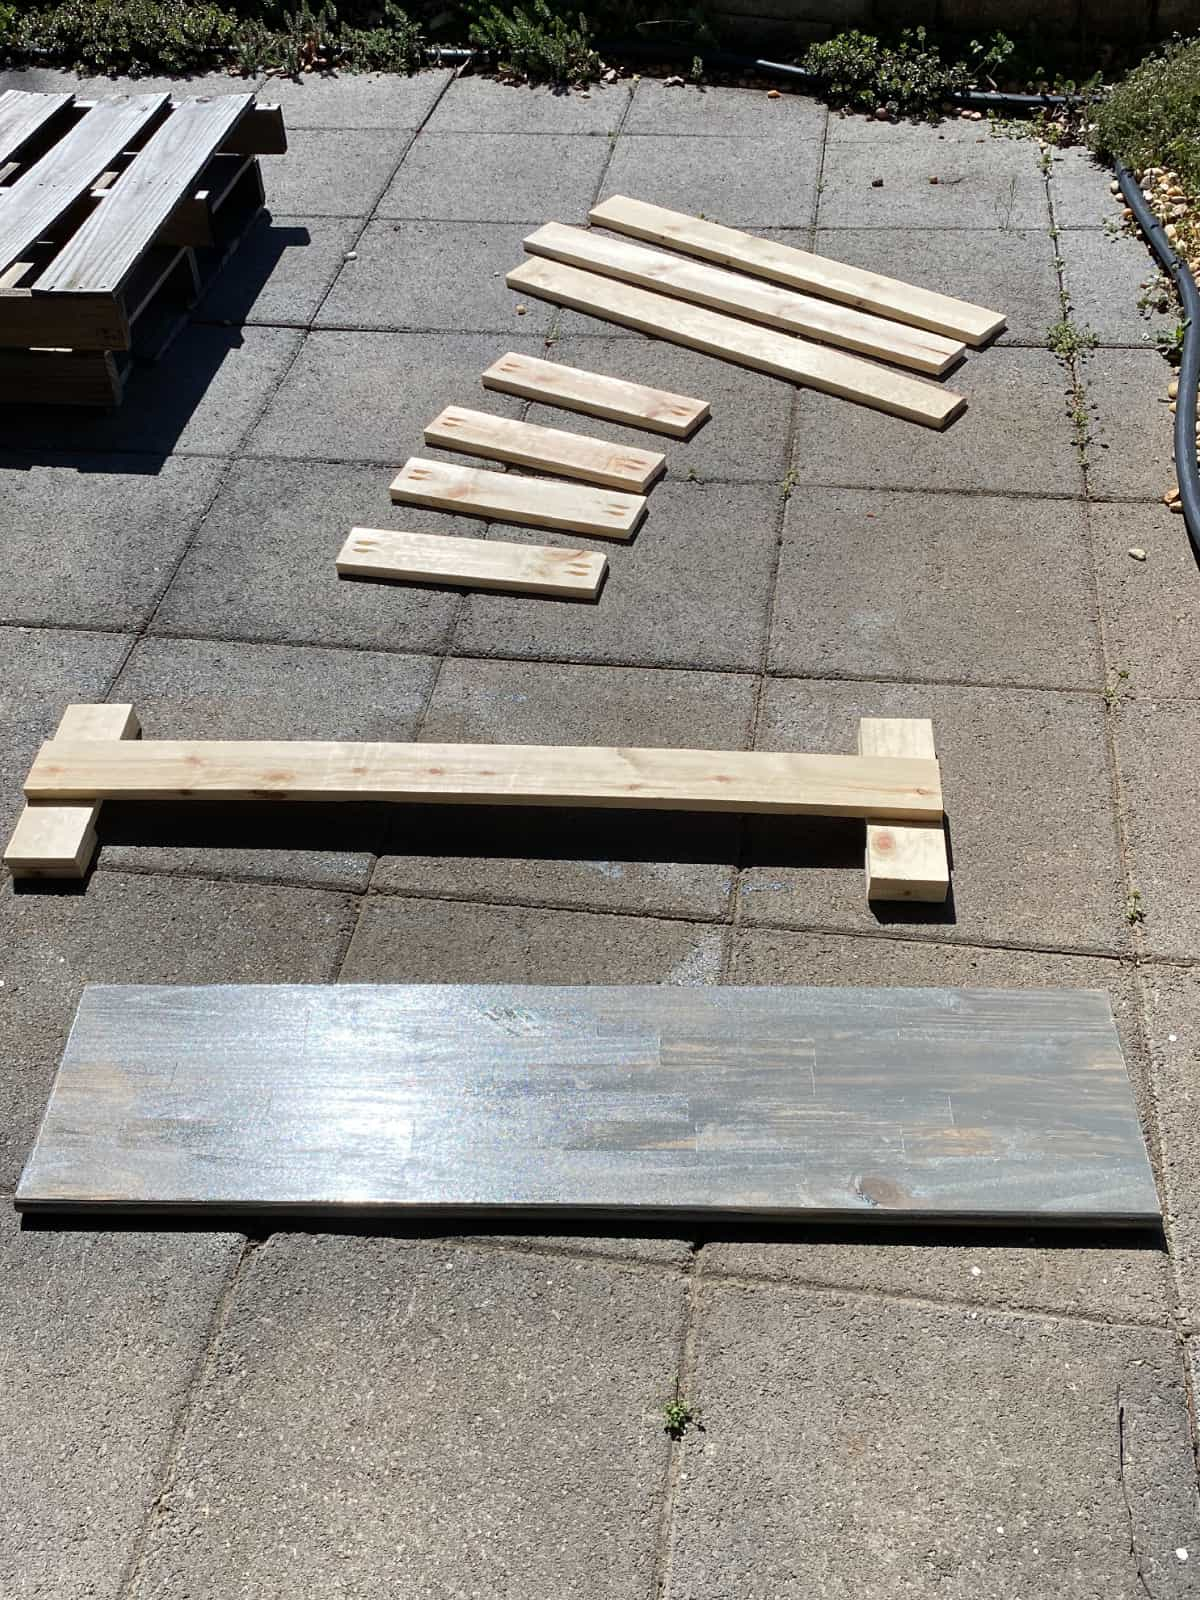 cut lumber and top for a diy bench